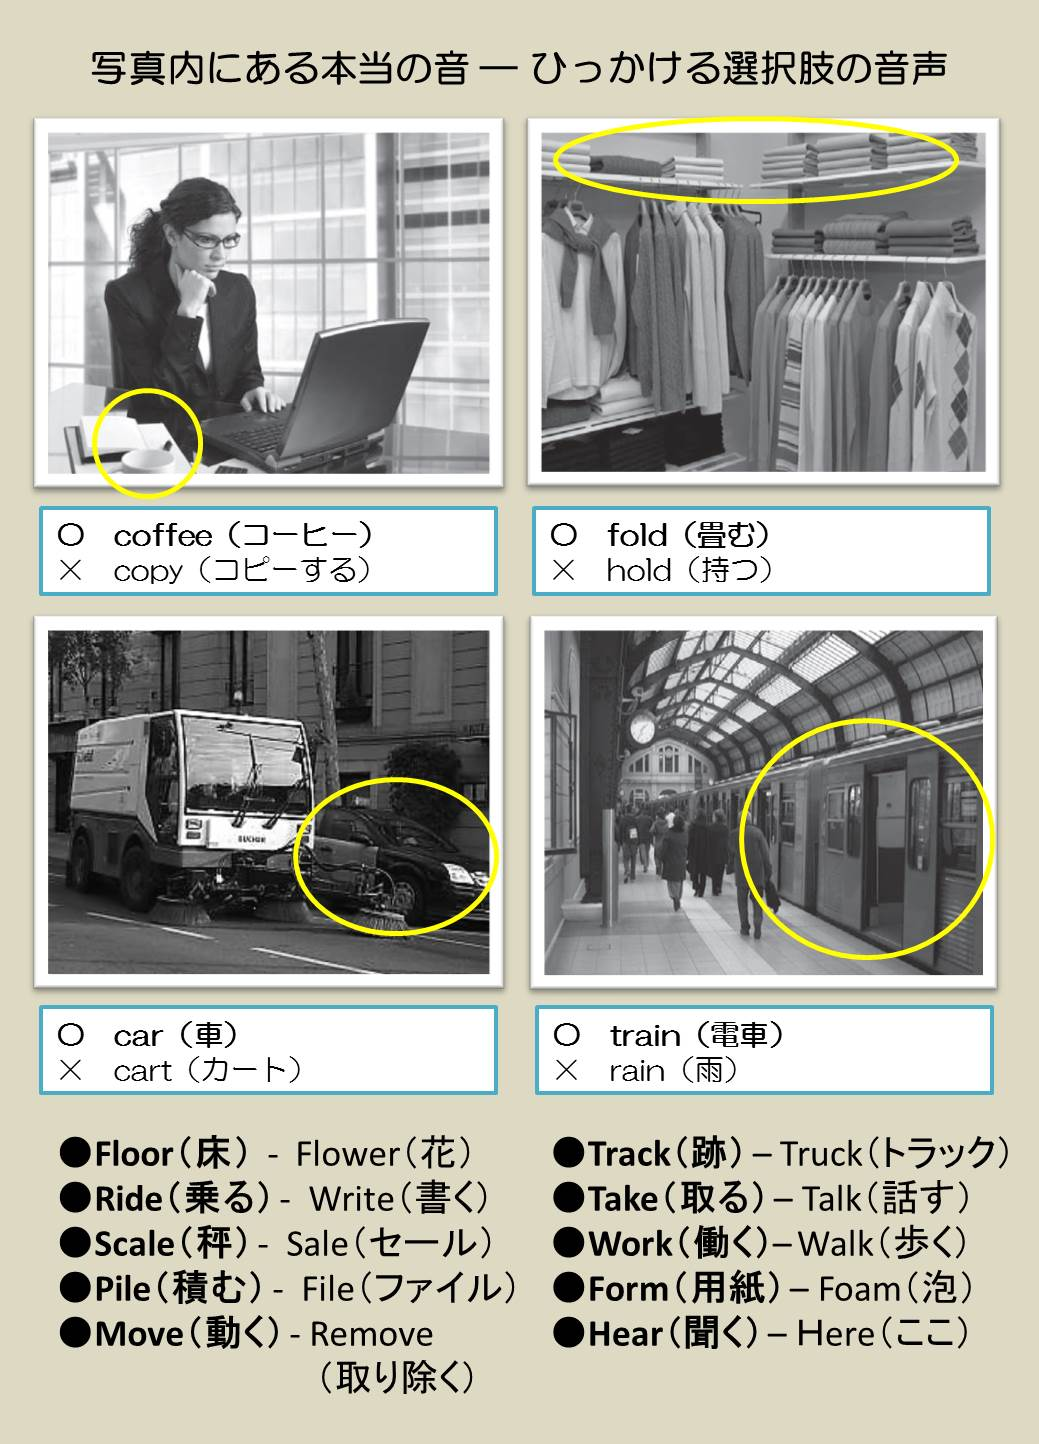 toeic-part1-samplephoto-check3